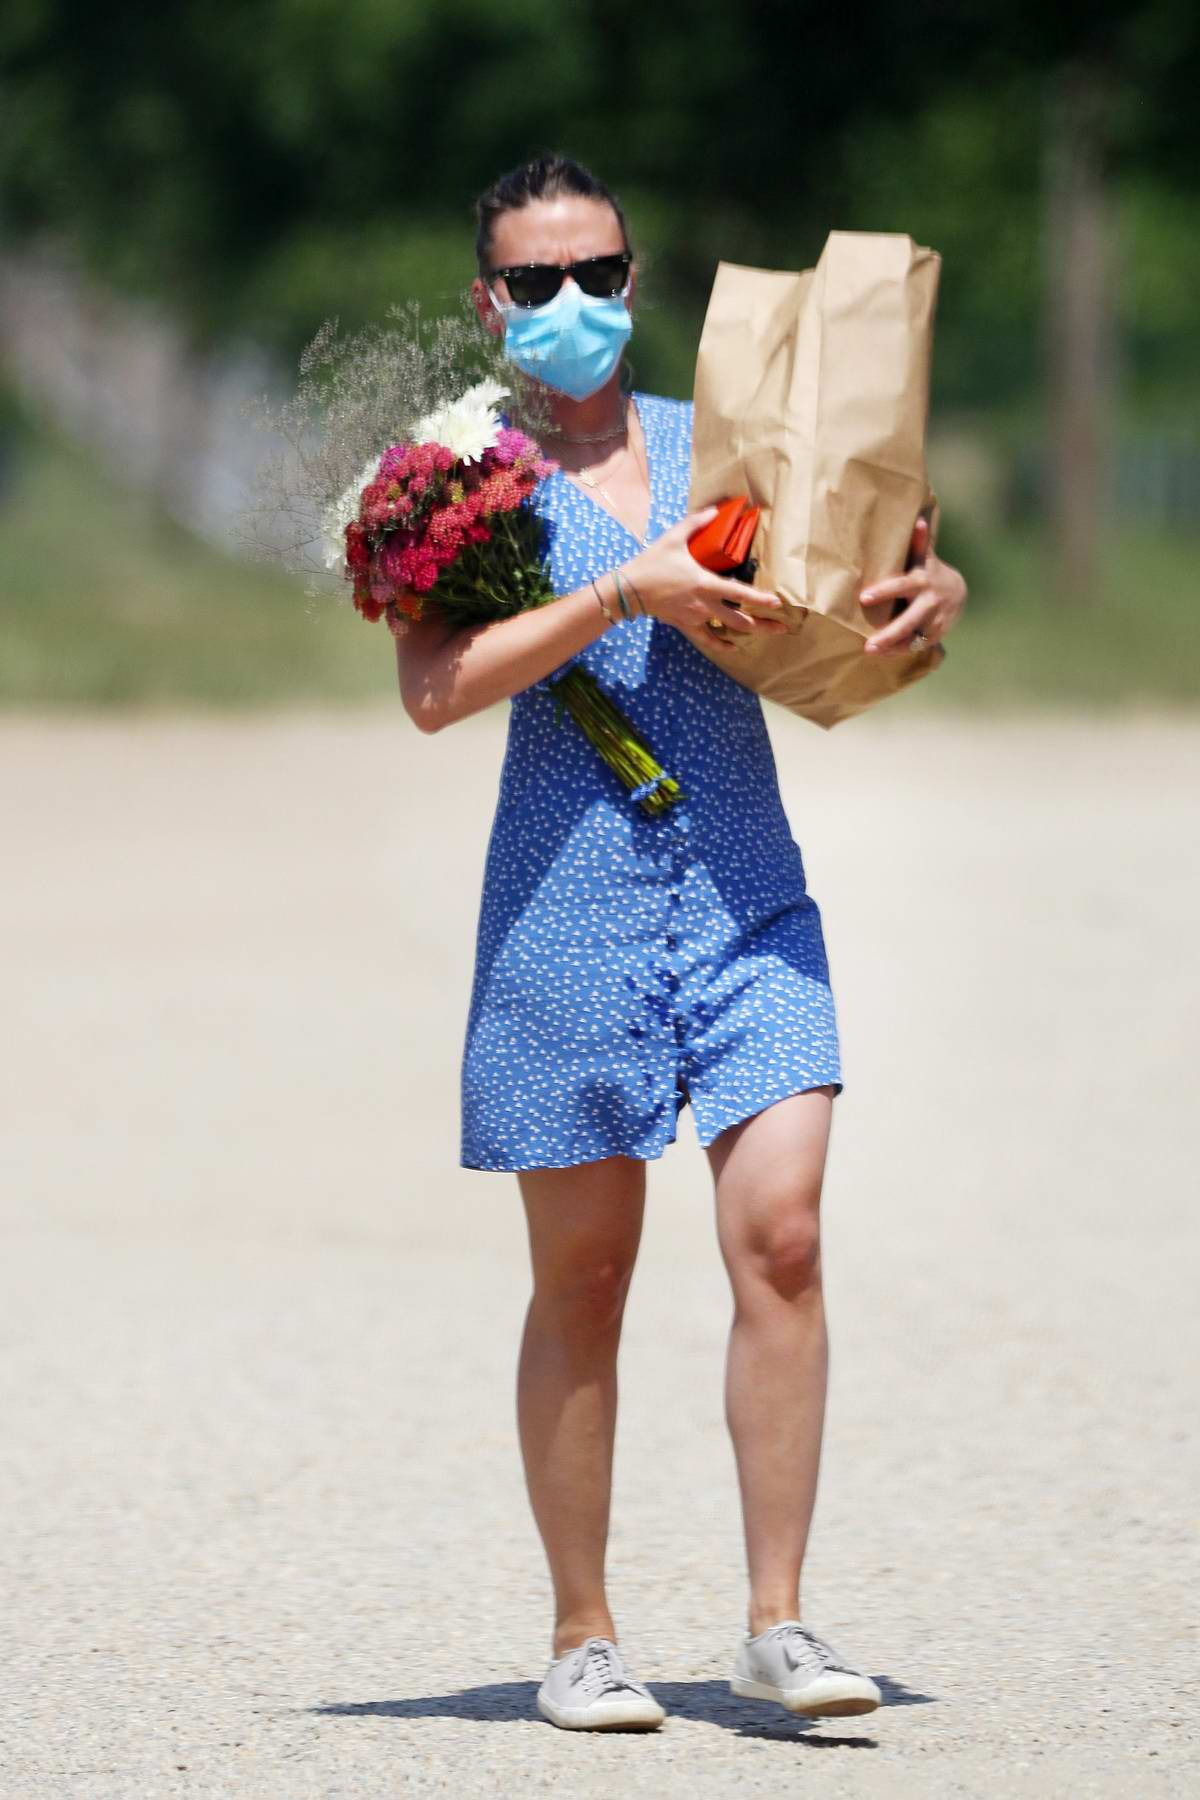 Scarlett Johansson picks up flowers and groceries at a farmer's market in The Hamptons, New York